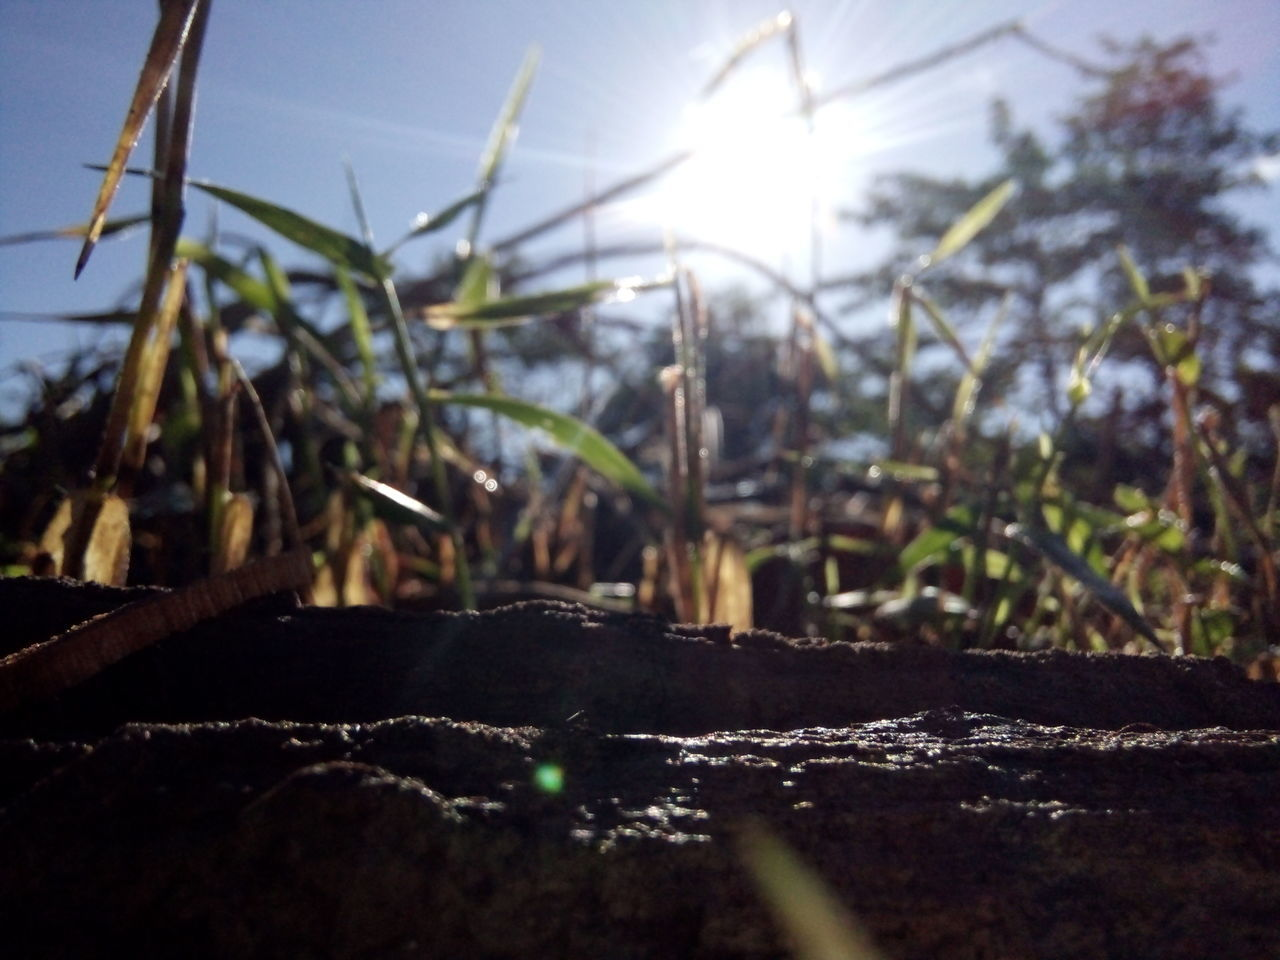 sunlight, nature, no people, outdoors, day, field, plant, growth, close-up, beauty in nature, sky